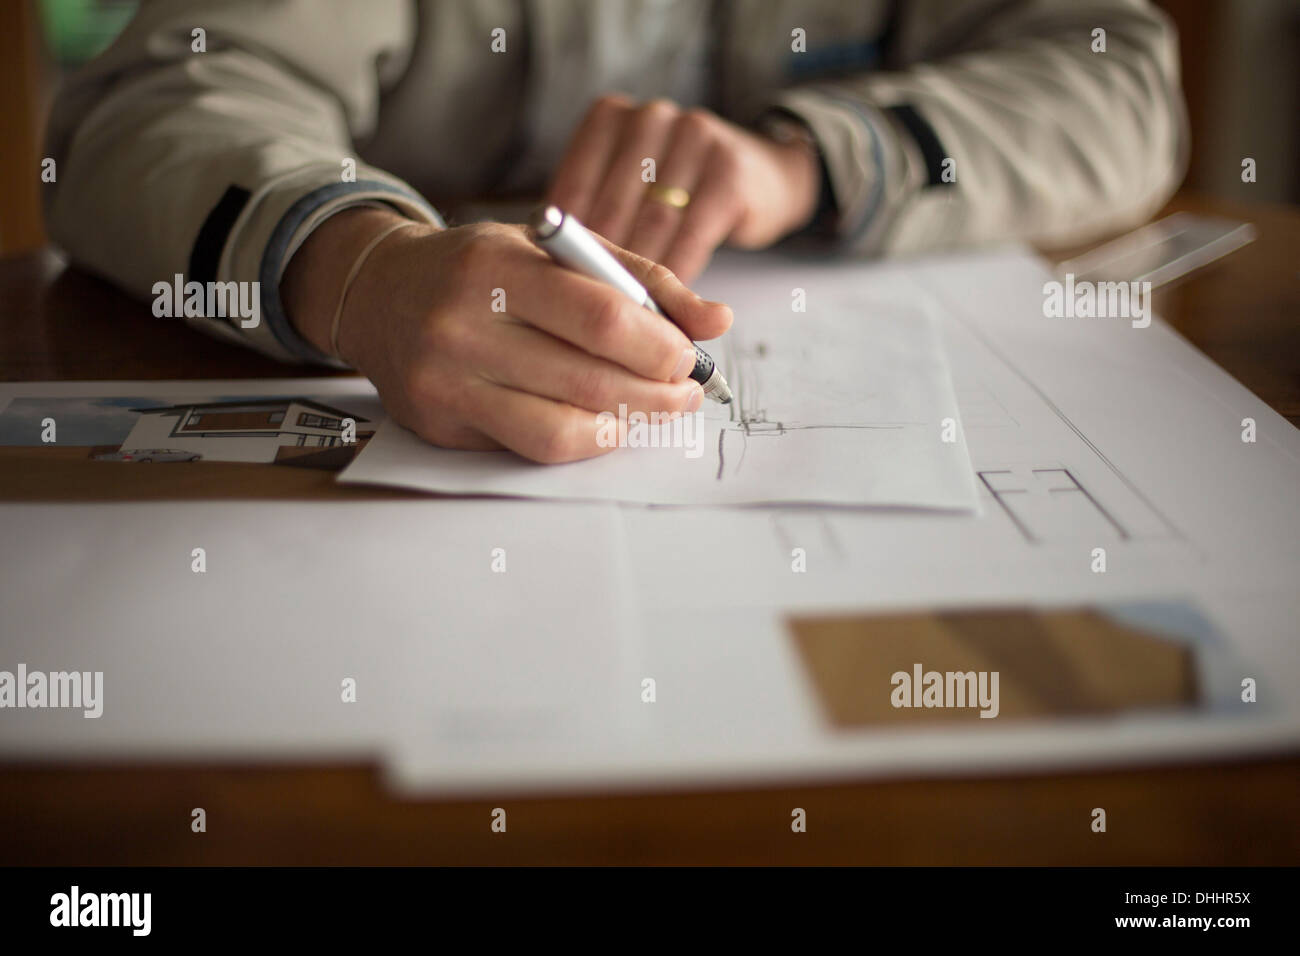 Mid-section of man doing technical drawing - Stock Image